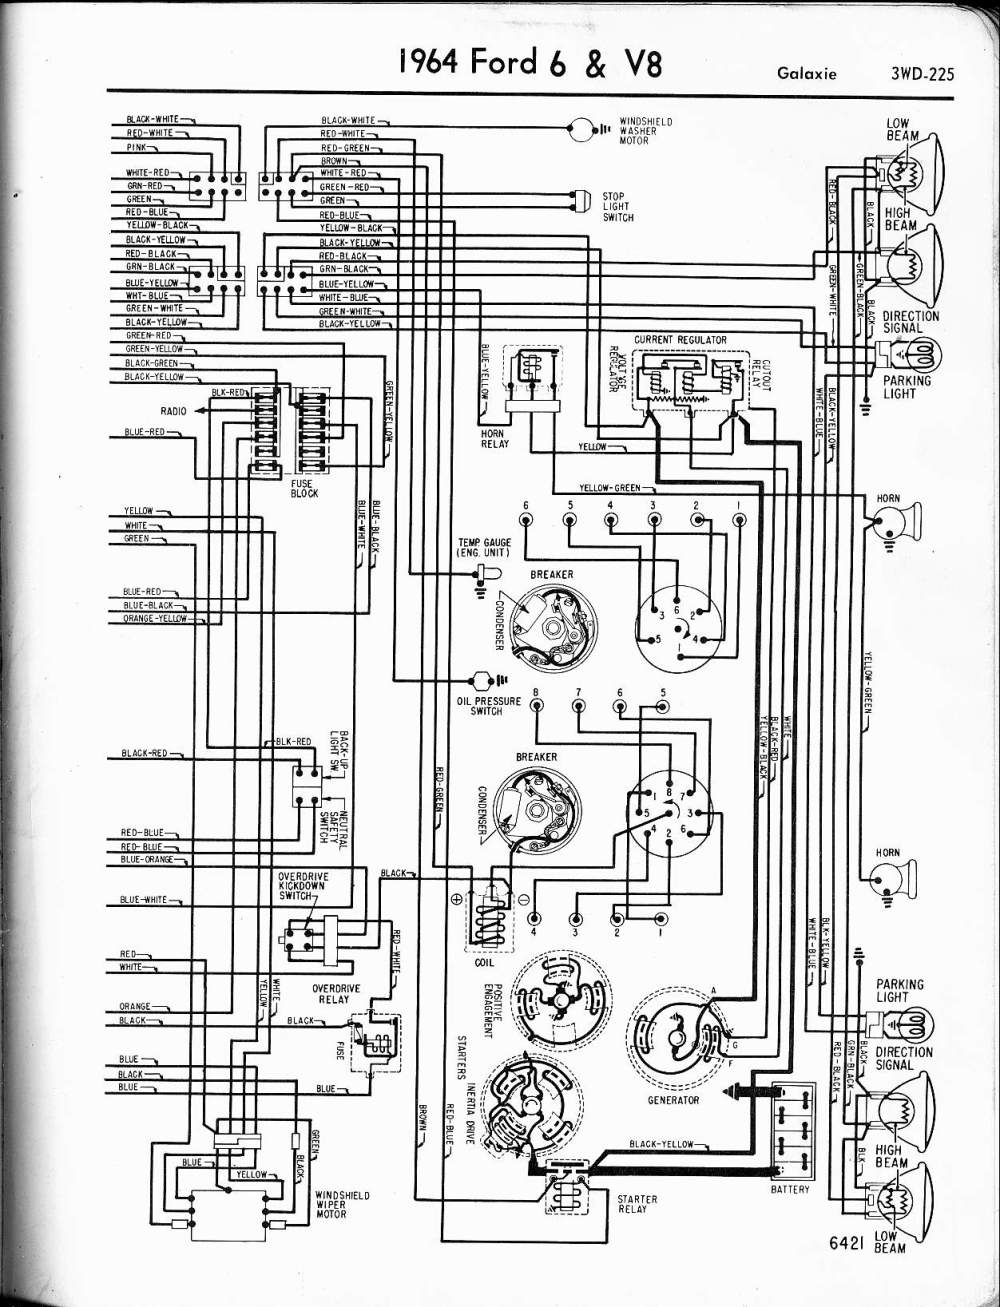 medium resolution of 1964 ford wiring diagram blog wiring diagram 64 ford galaxie wiring diagram 1964 ford wiring diagram